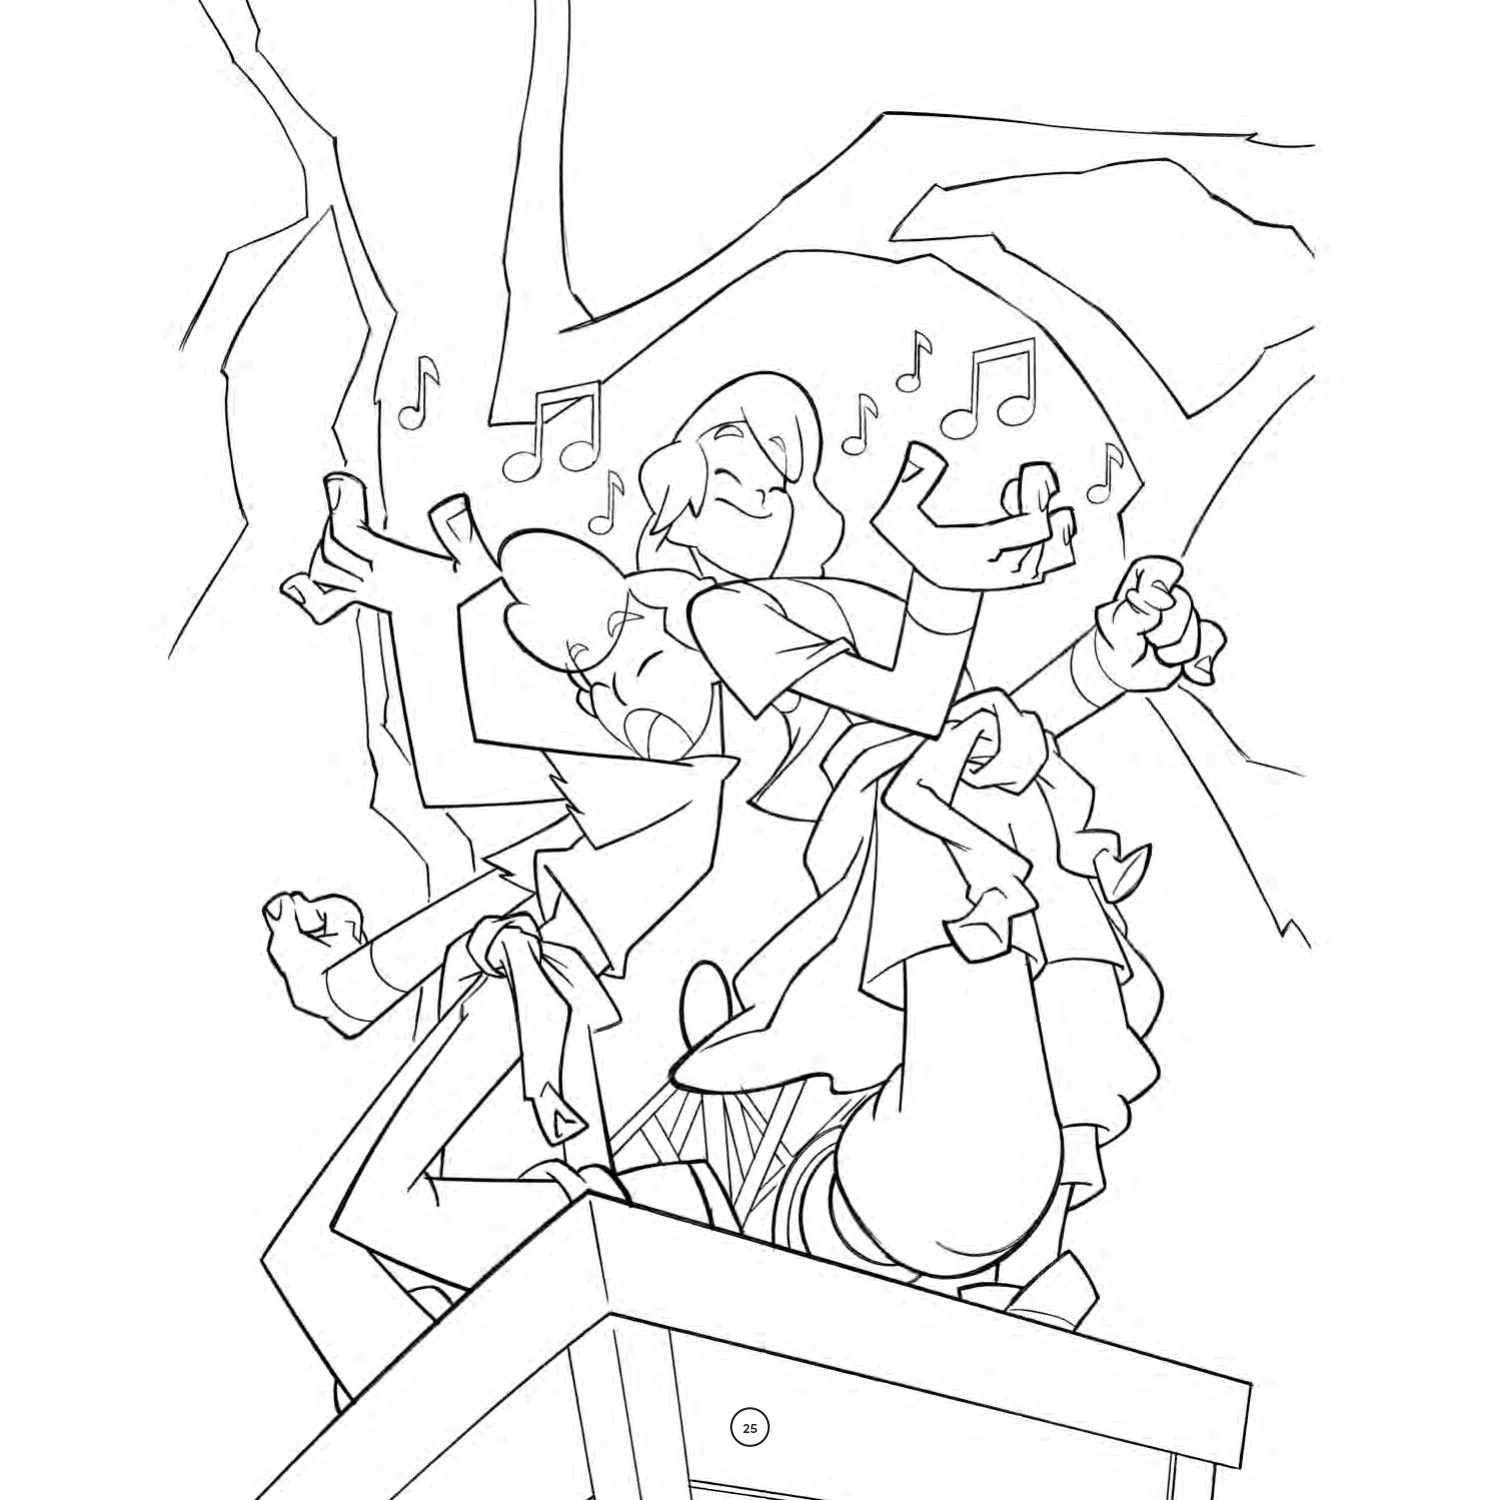 BILL & TED 3 Coloring Book Pages are Totally Bodacious - Nerdist | 1500x1500